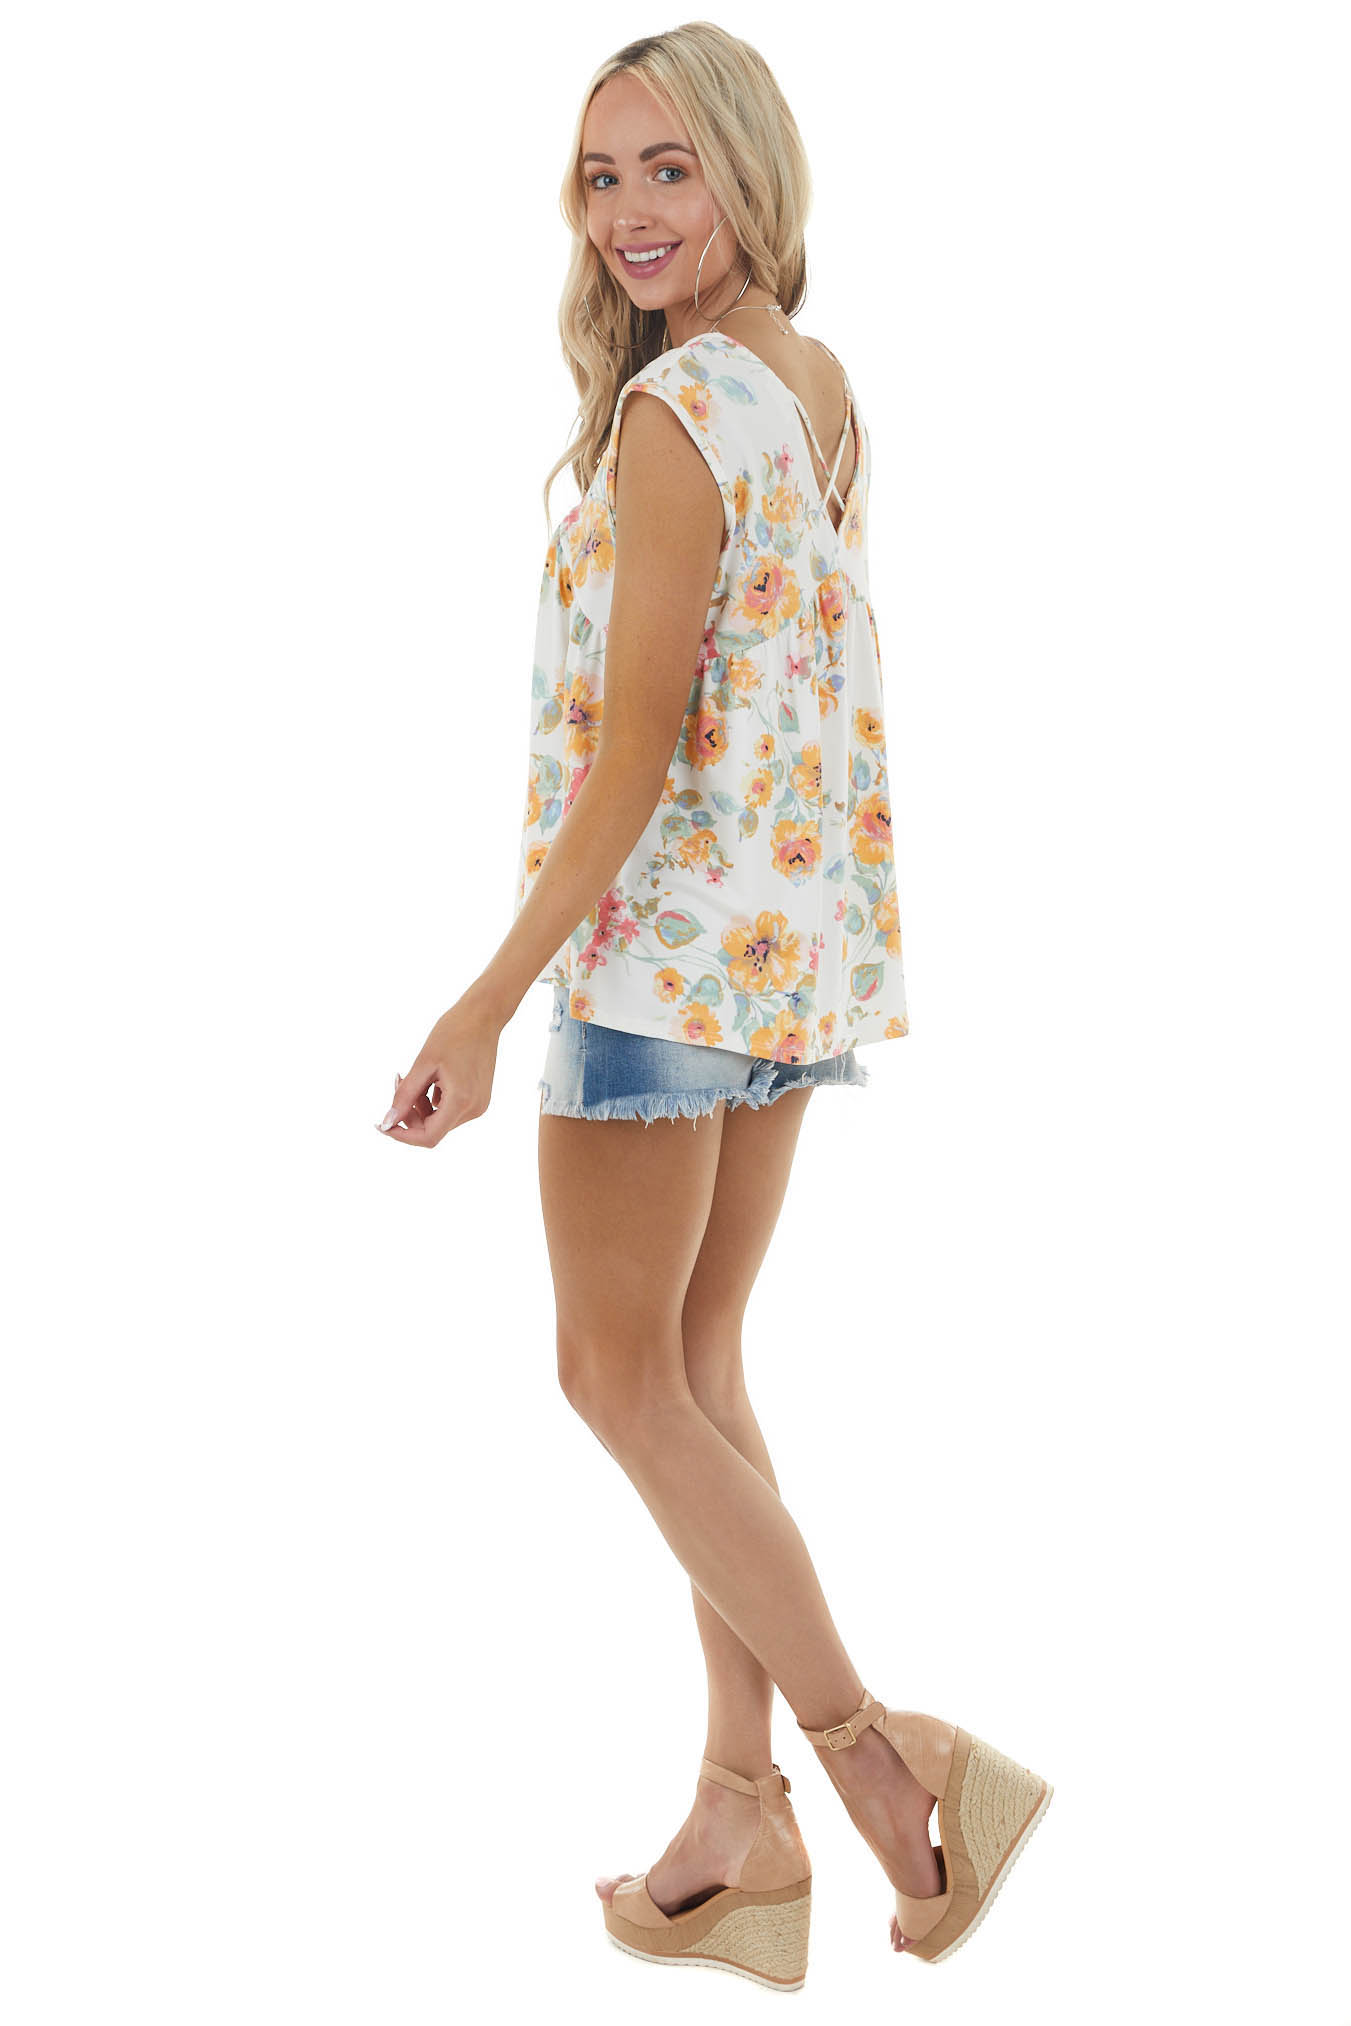 Off White Floral Print Knit Top with Crossed Strap Details